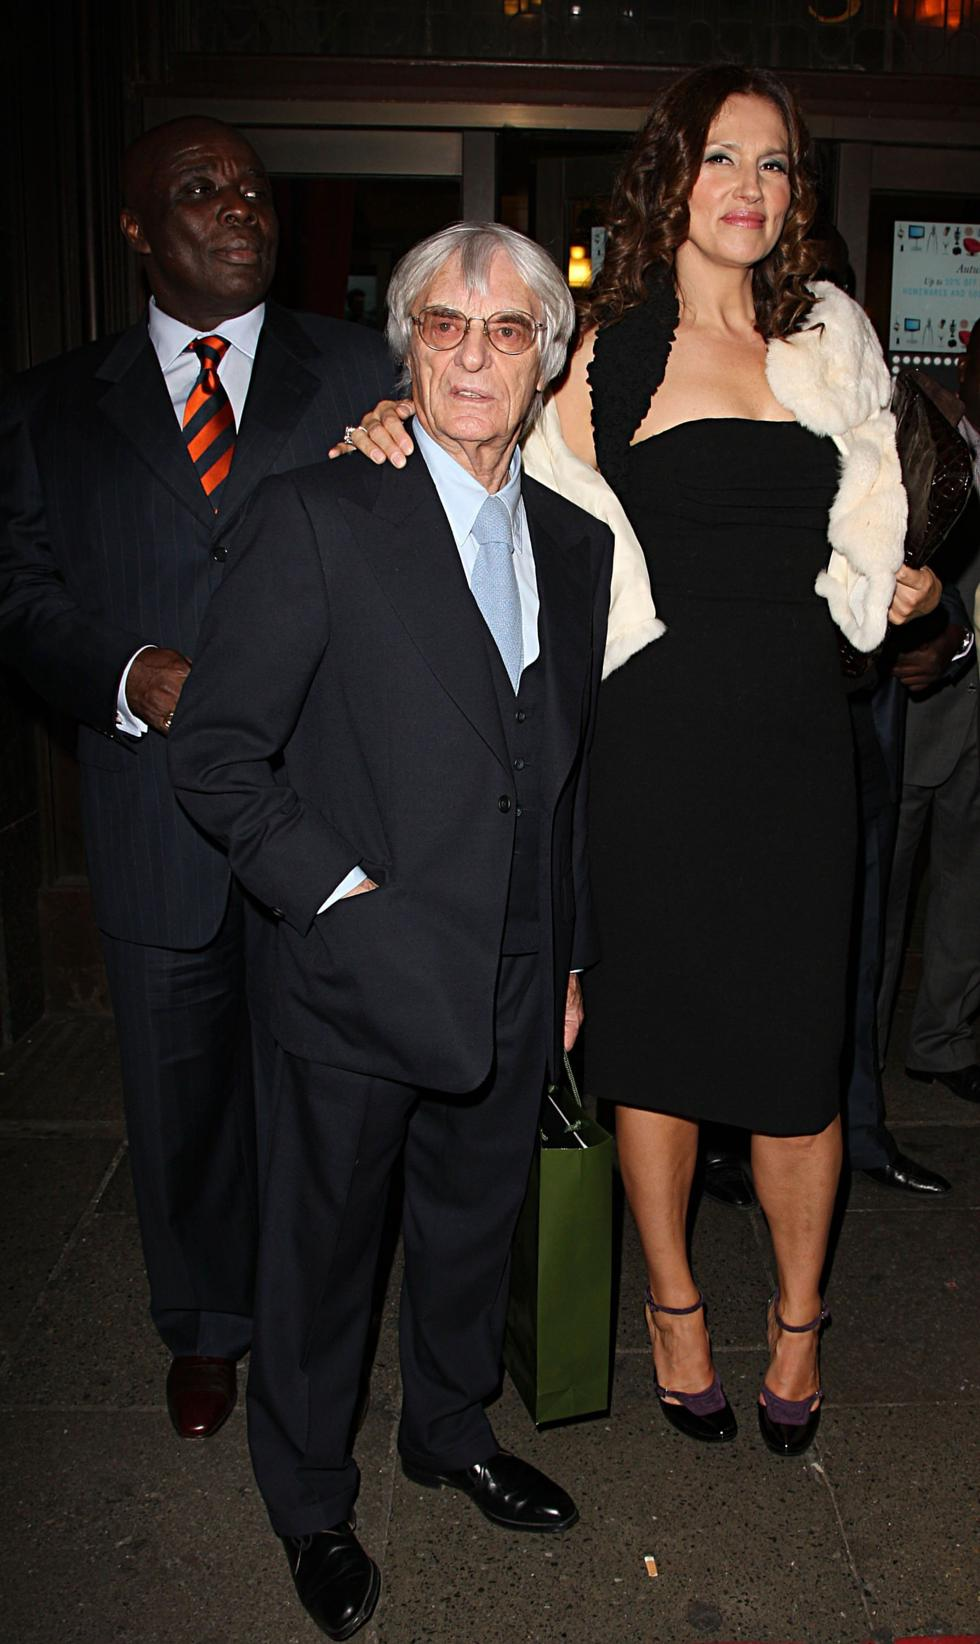 Stars and their height differences Croatian model Slavica Ecclestone towers over her former Formula One racing  CEO husband Bernie Ecclestone